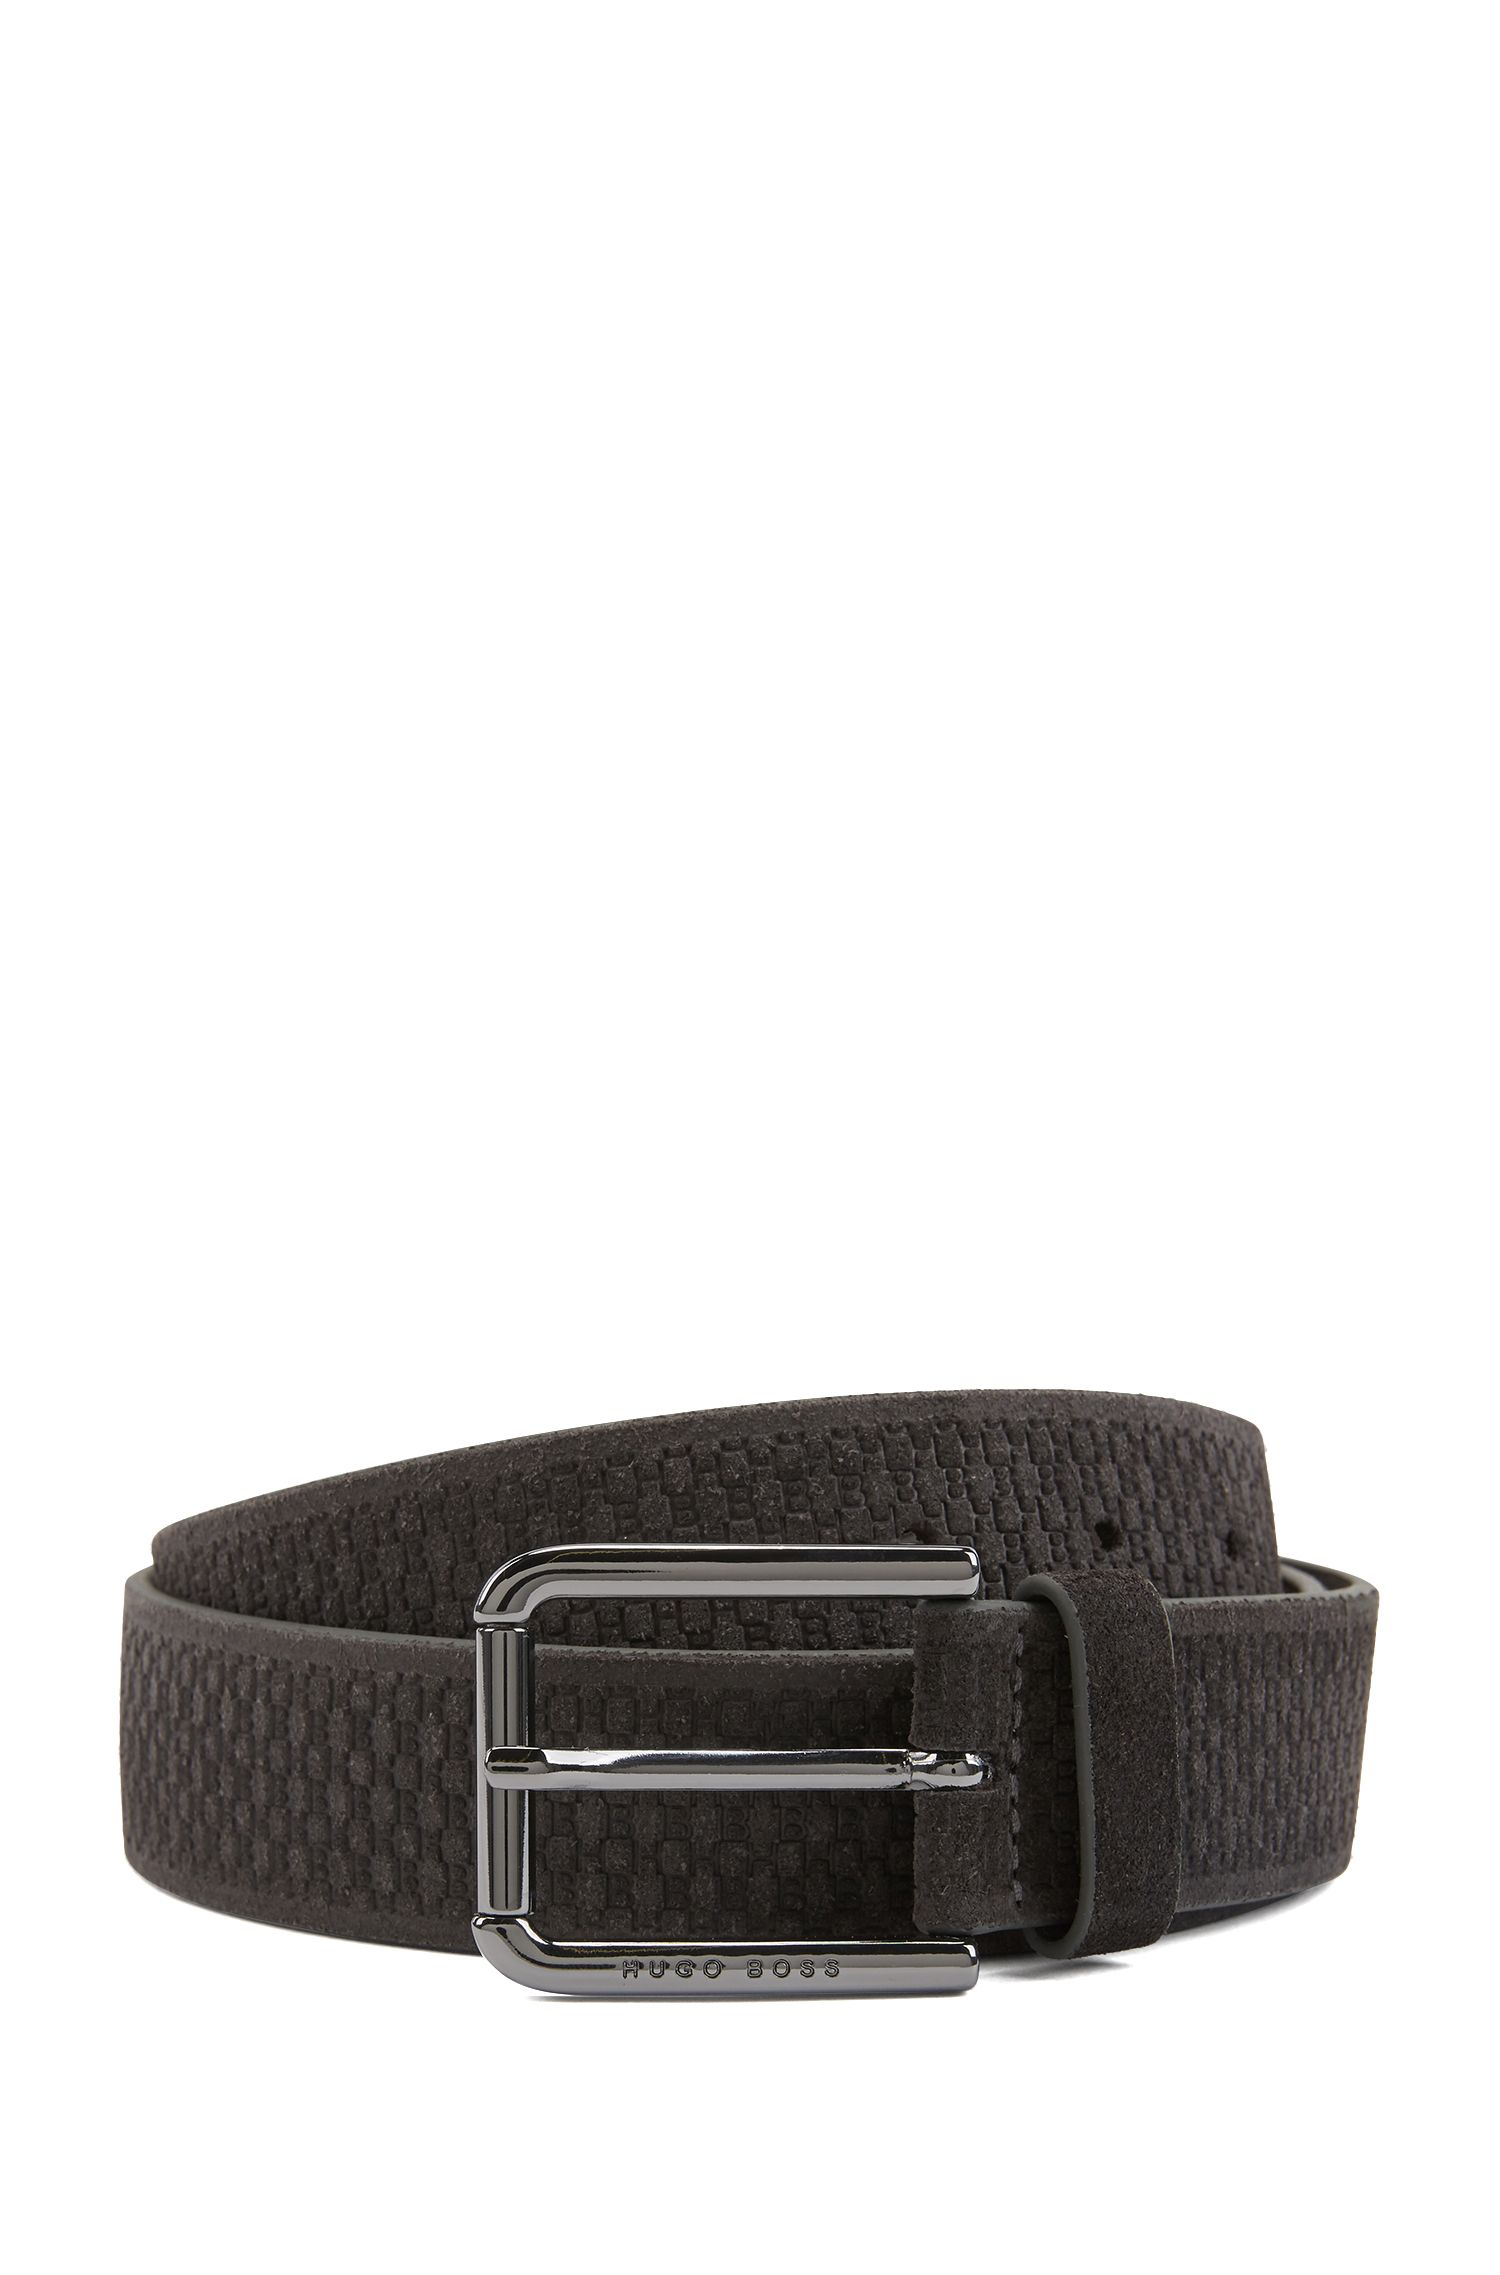 Suede belt with embossed pattern